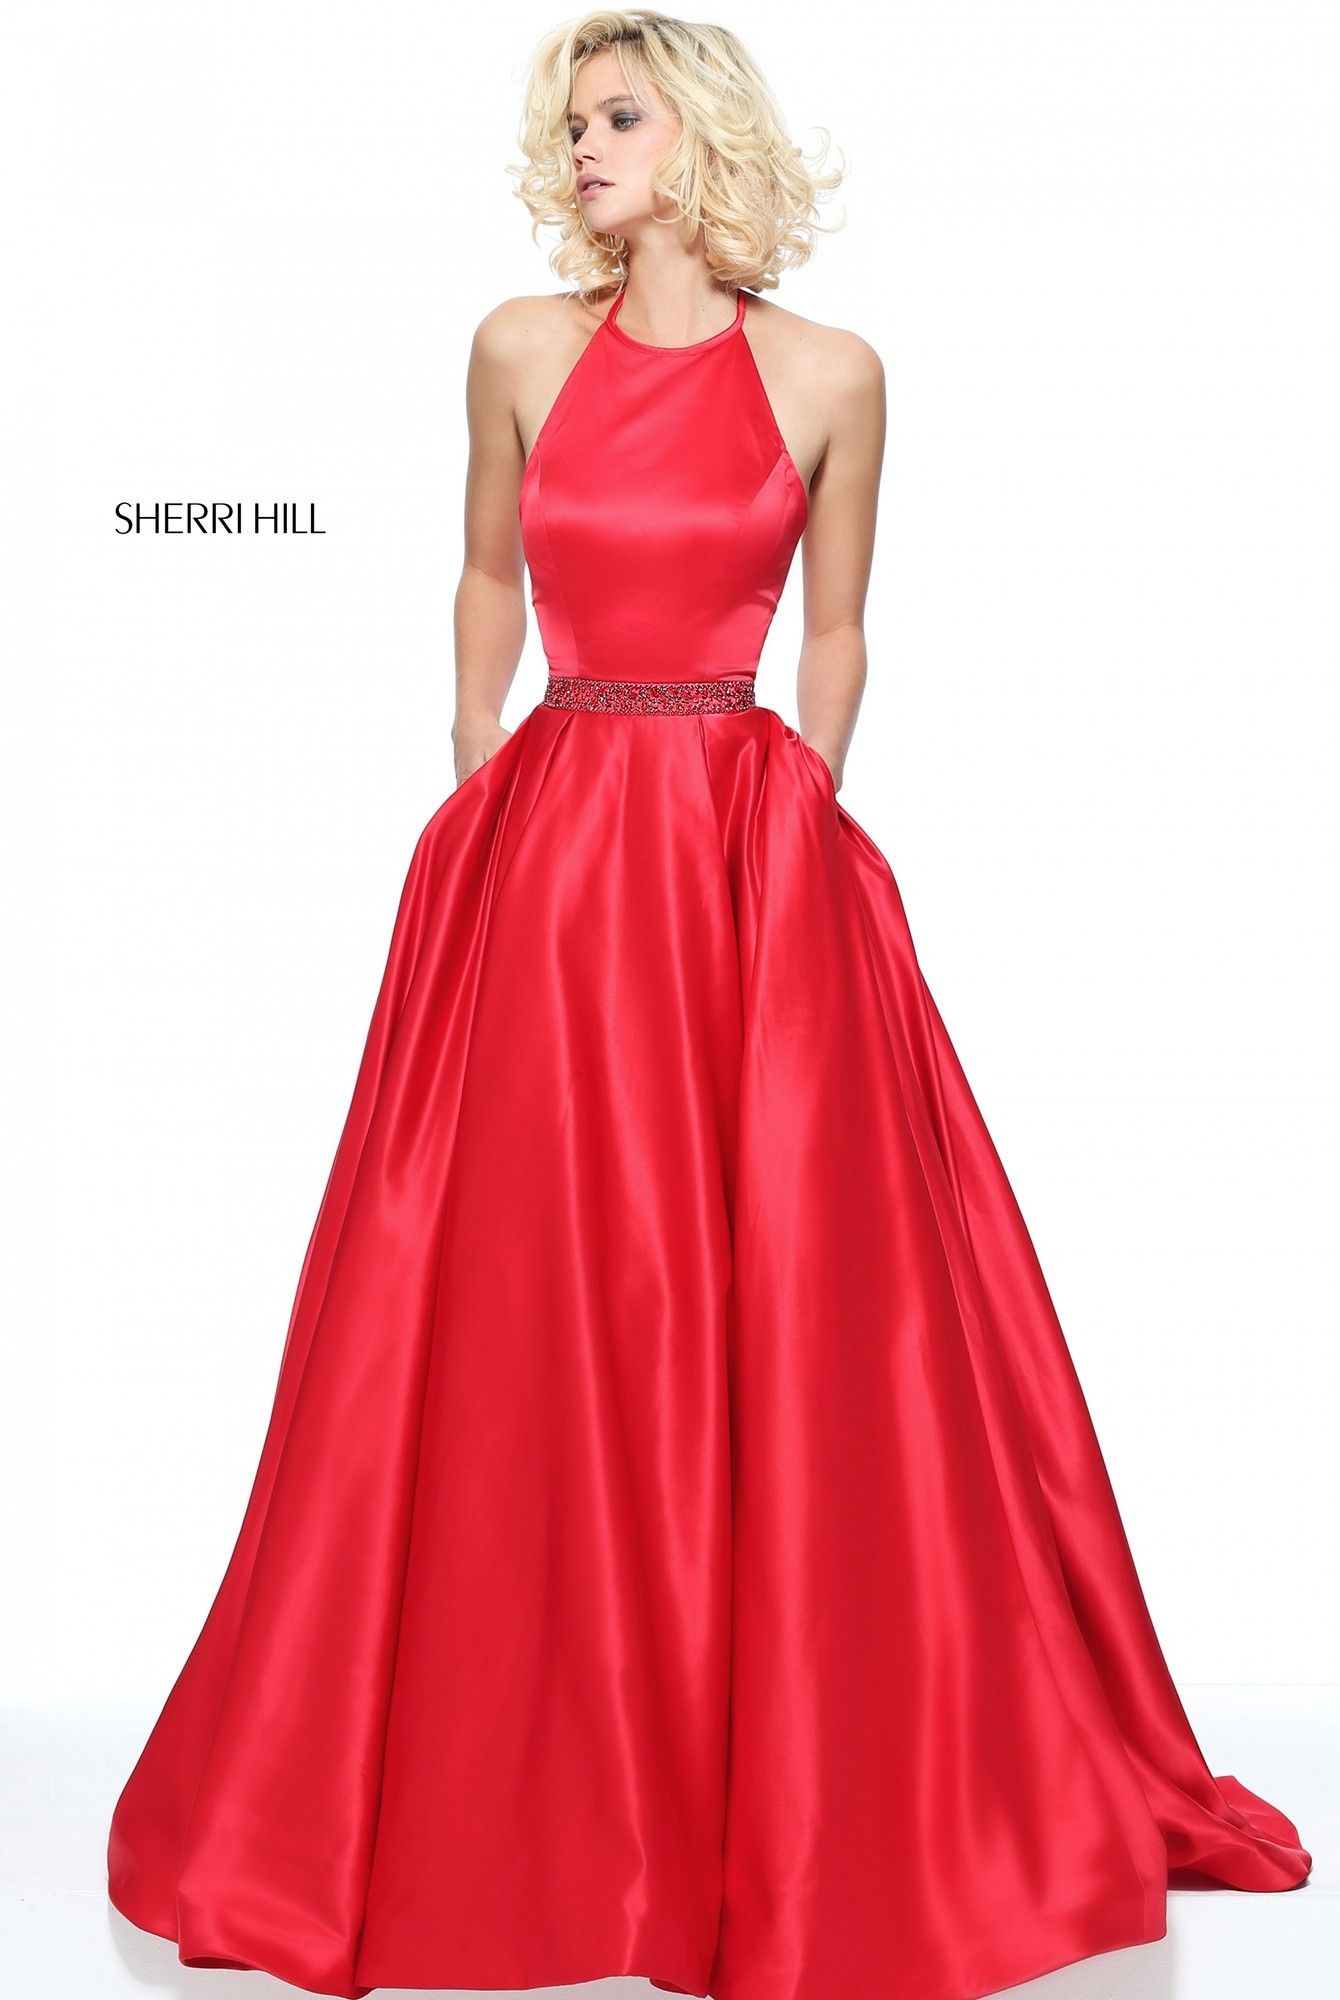 Sherri Hill 51036 Alluring A-Line Satin Halter Dress